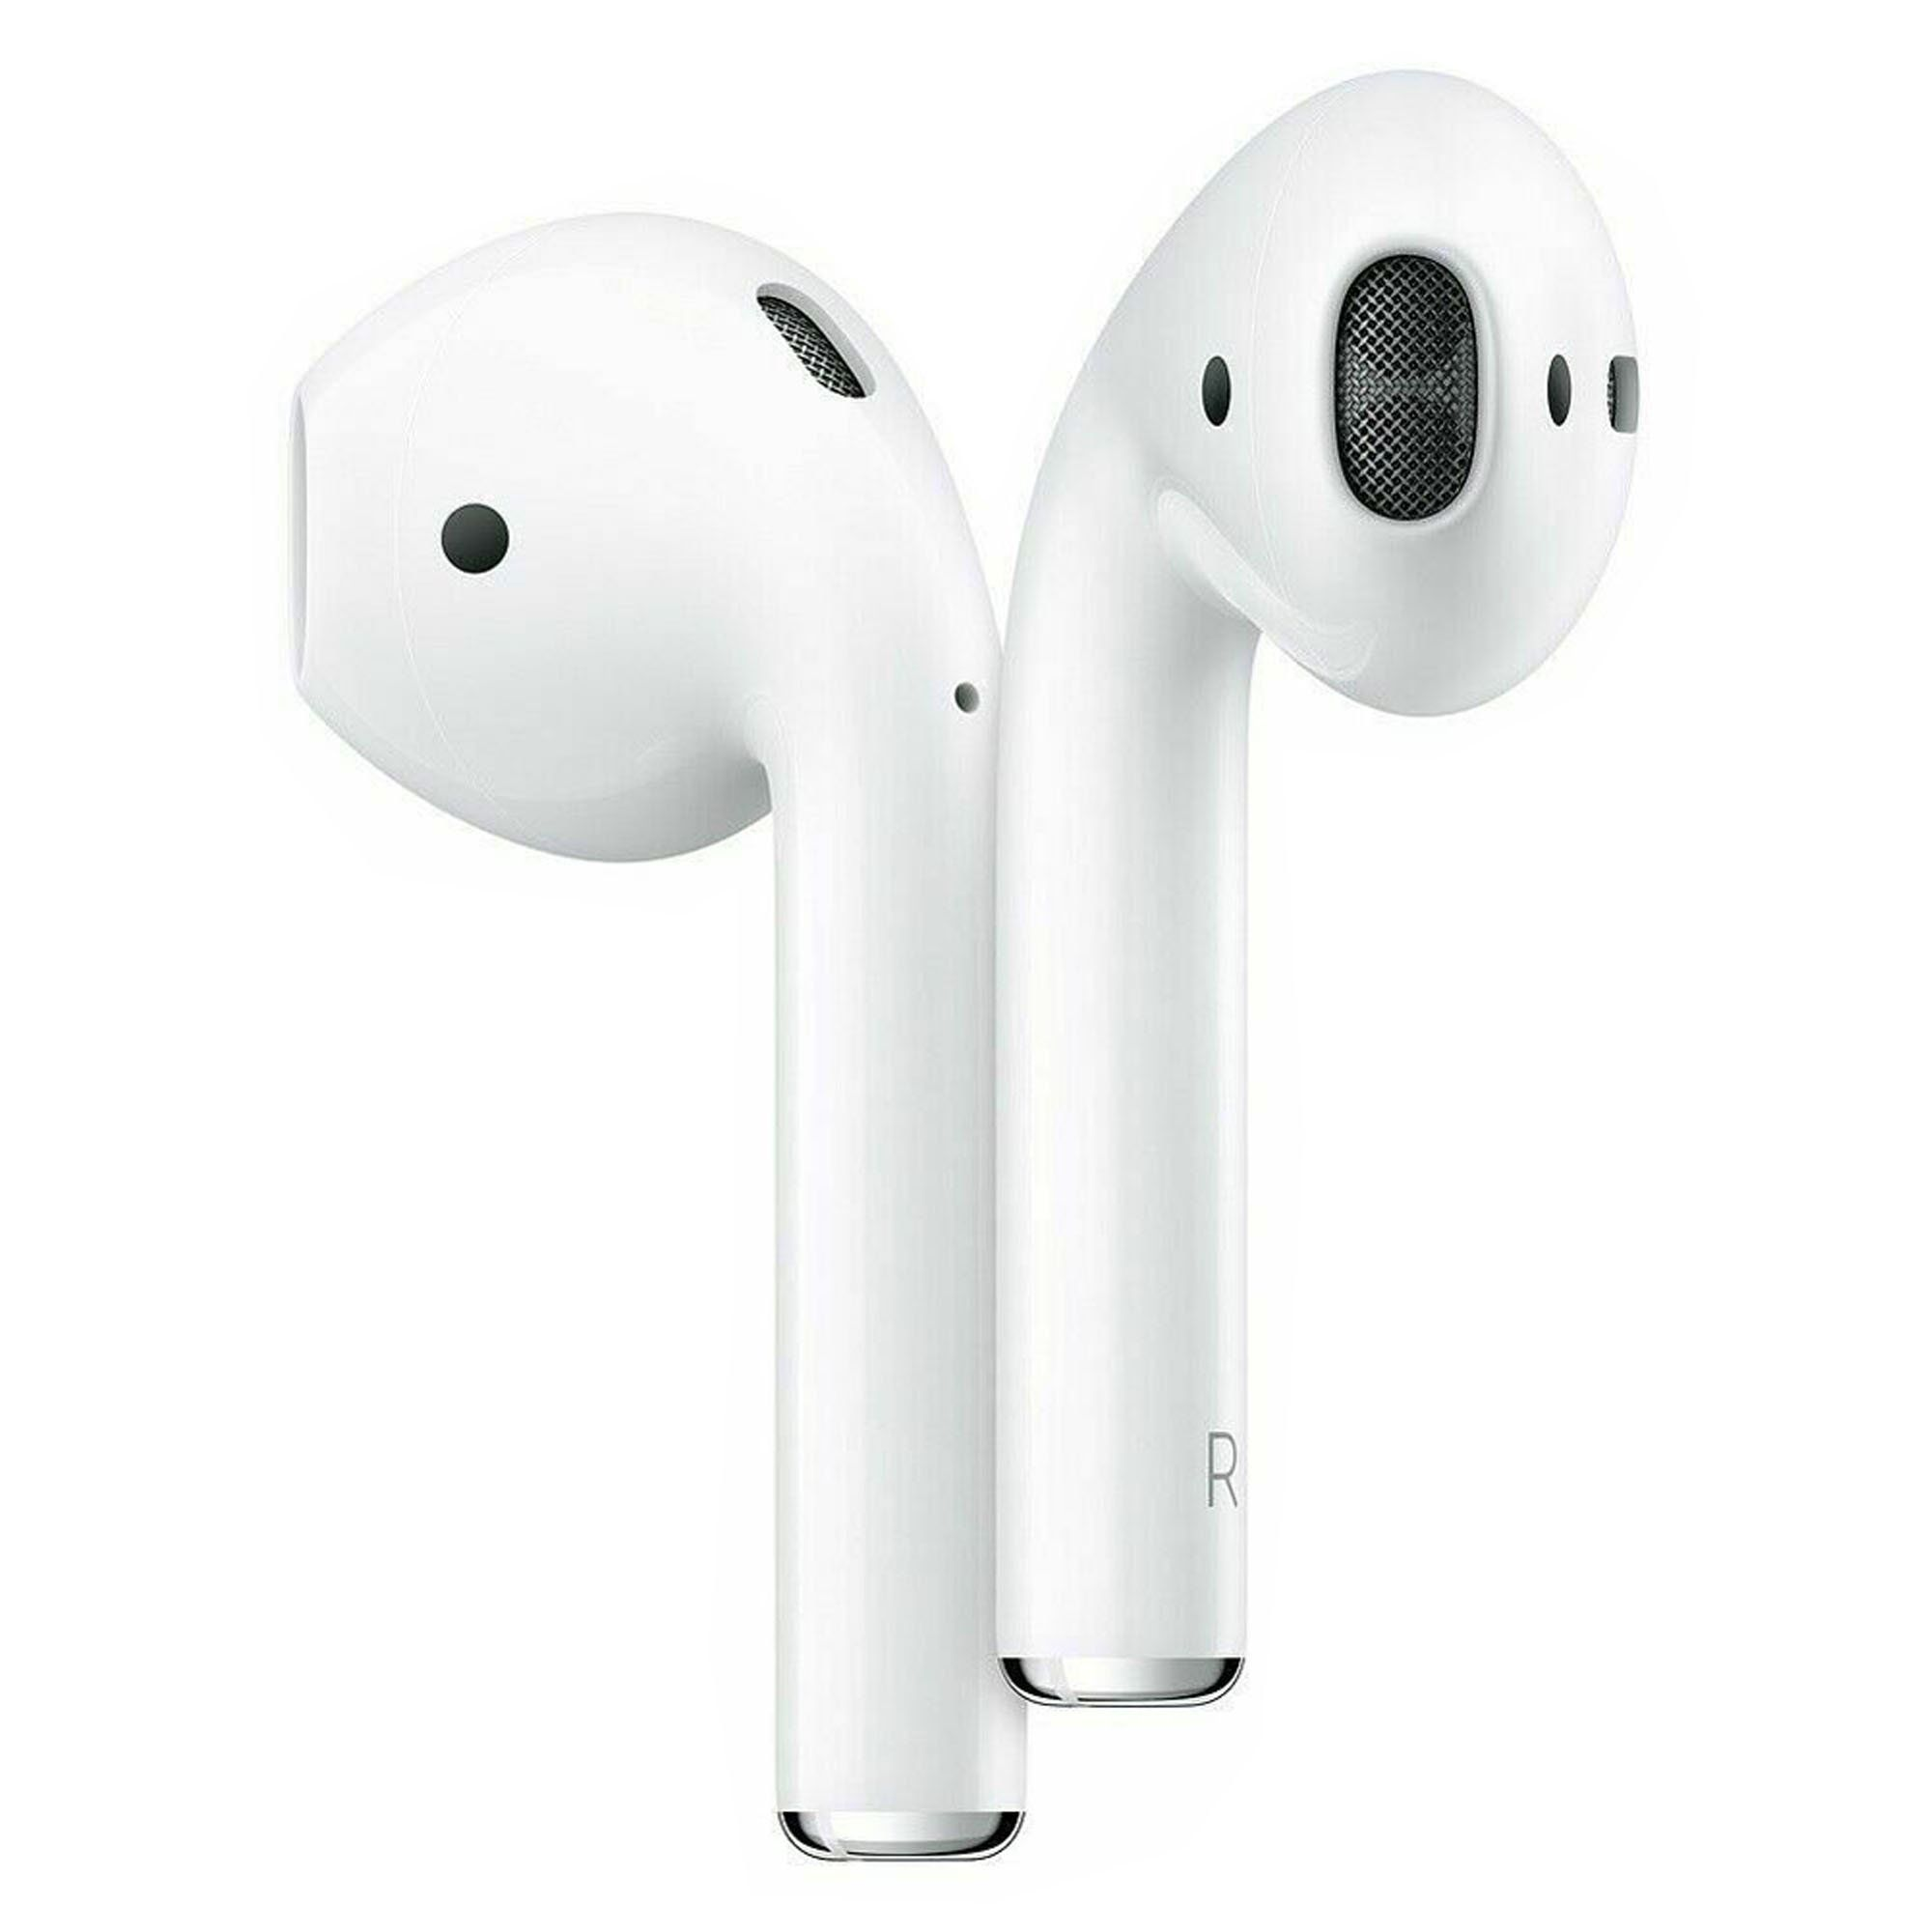 Sunisery Refurbished For Airpods 2nd Generation With Wireless Charging Case Used Walmart Com In 2021 Apple Airpods 2 Wireless Headphones Headphones